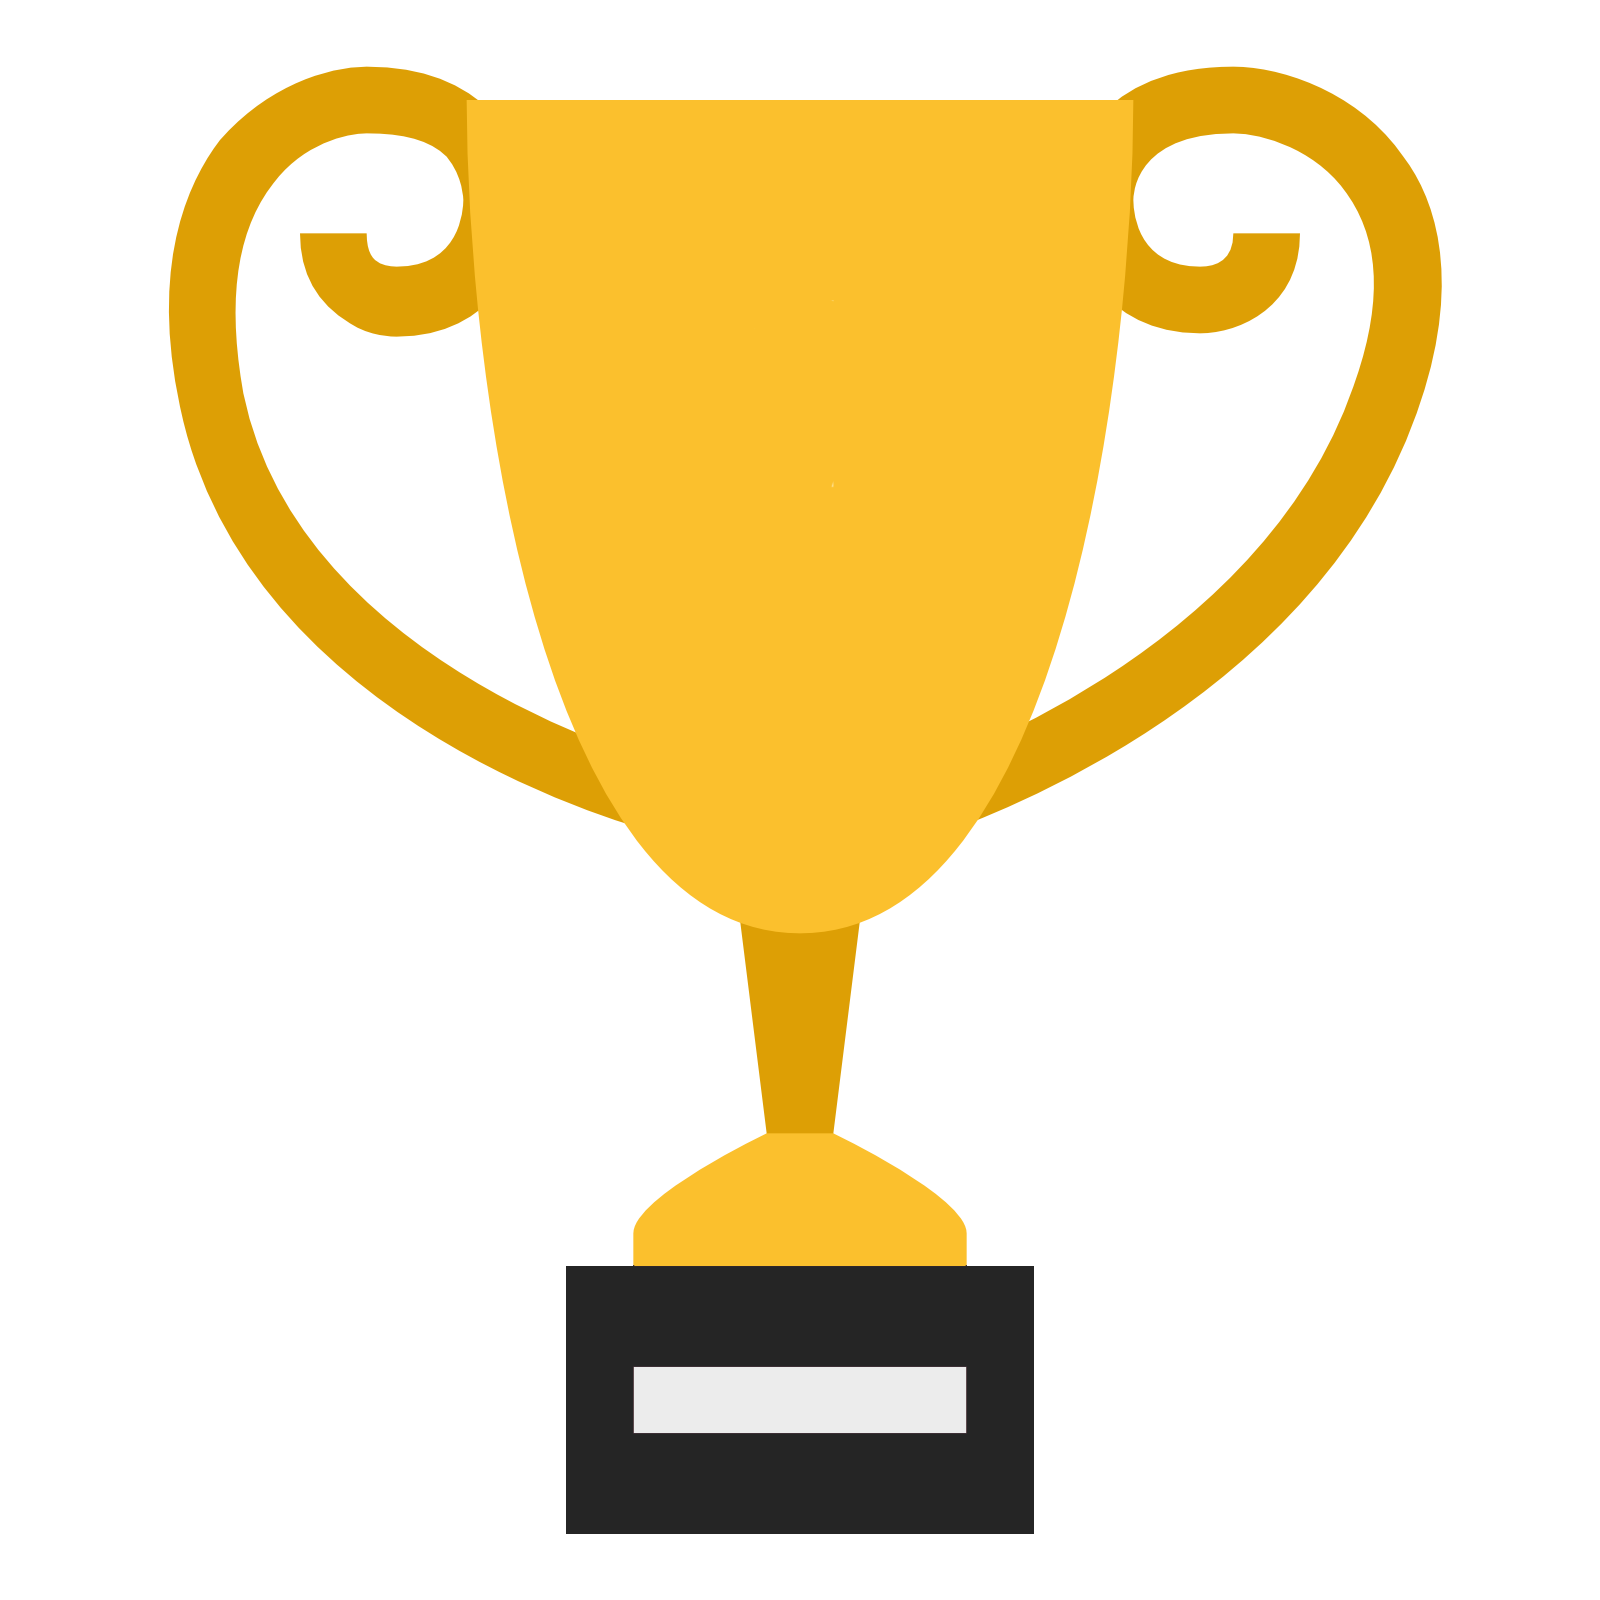 Trophy icon png. Computer icons clip art